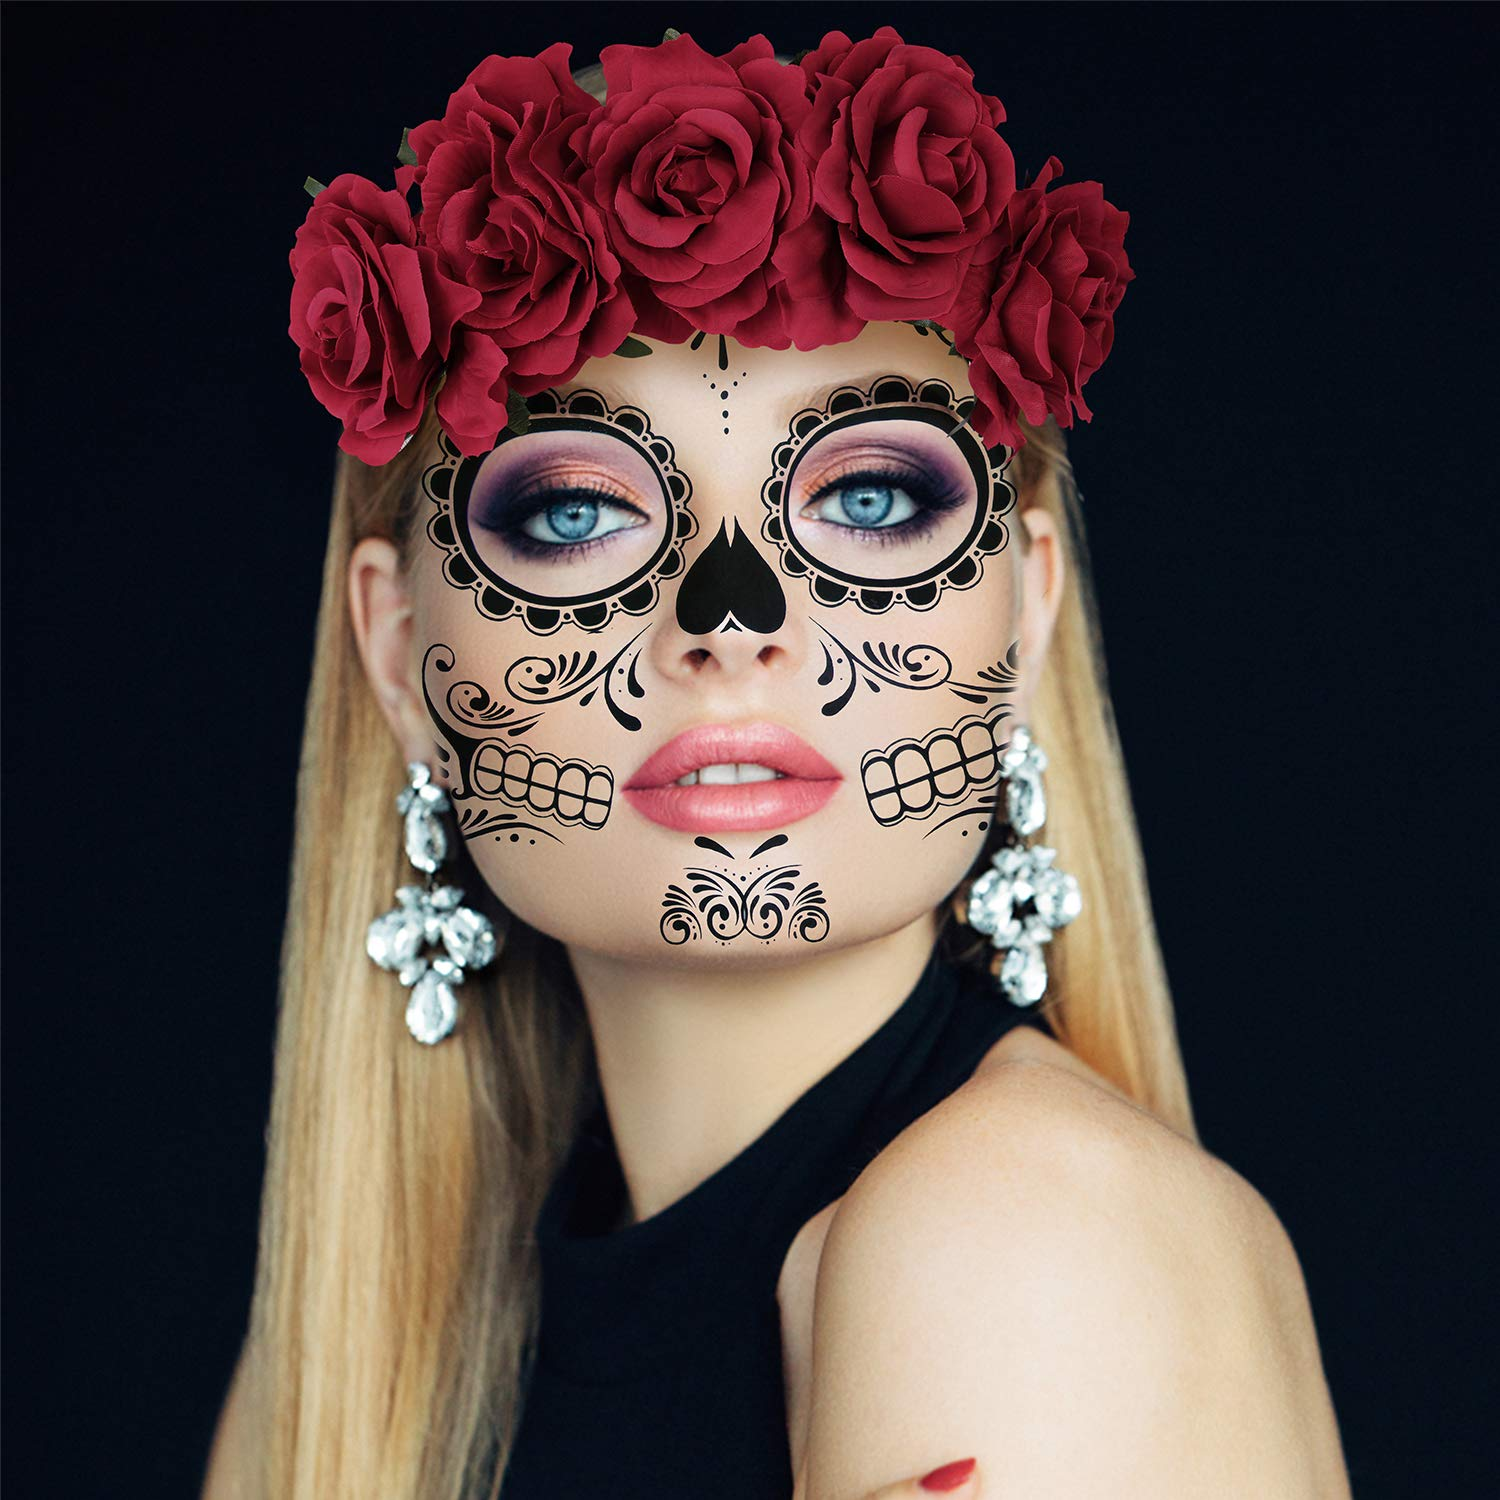 4 Kits Day of the Dead Sugar Skull Temporary Face Tattoo Makeup Tattoo for Men and Women with 1 Rose Red Flower Crown Headband for Halloween Costume by AFSTEE